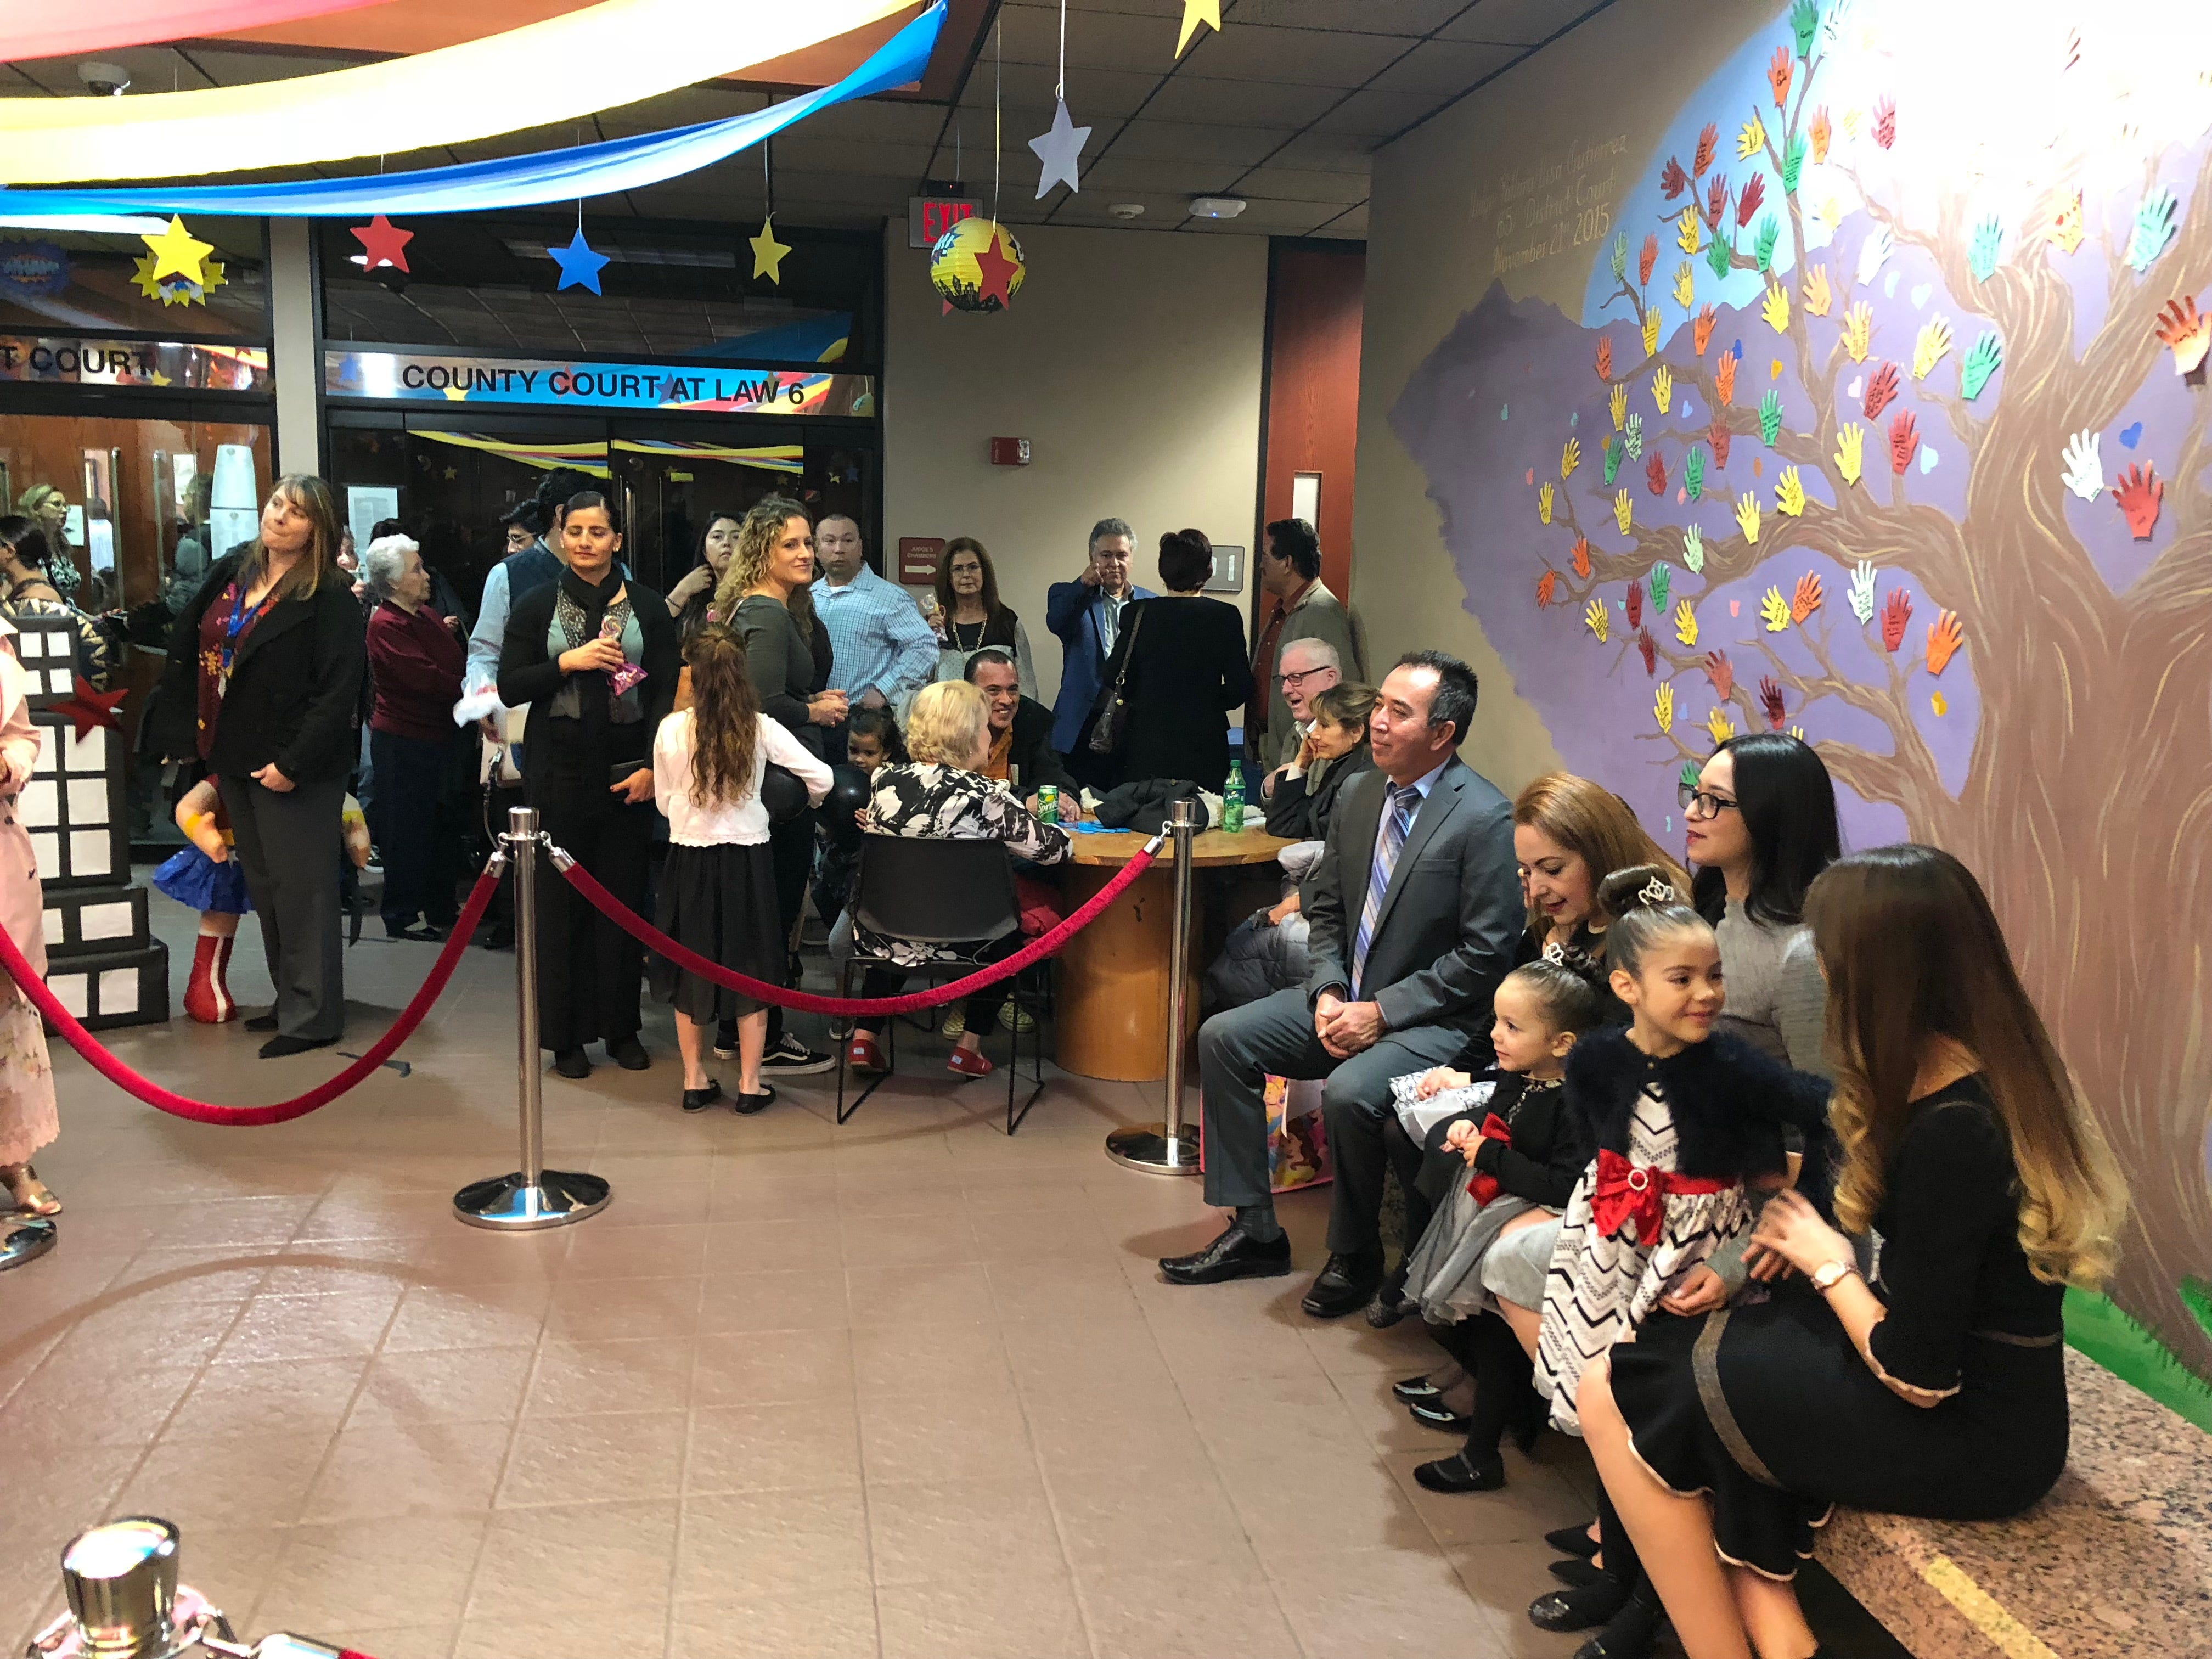 A National Adoption Day event was held Saturday, Nov. 17, 2018, at the El Paso County Courthouse. A total of 29 children were officially adopted by 12 El Paso families.